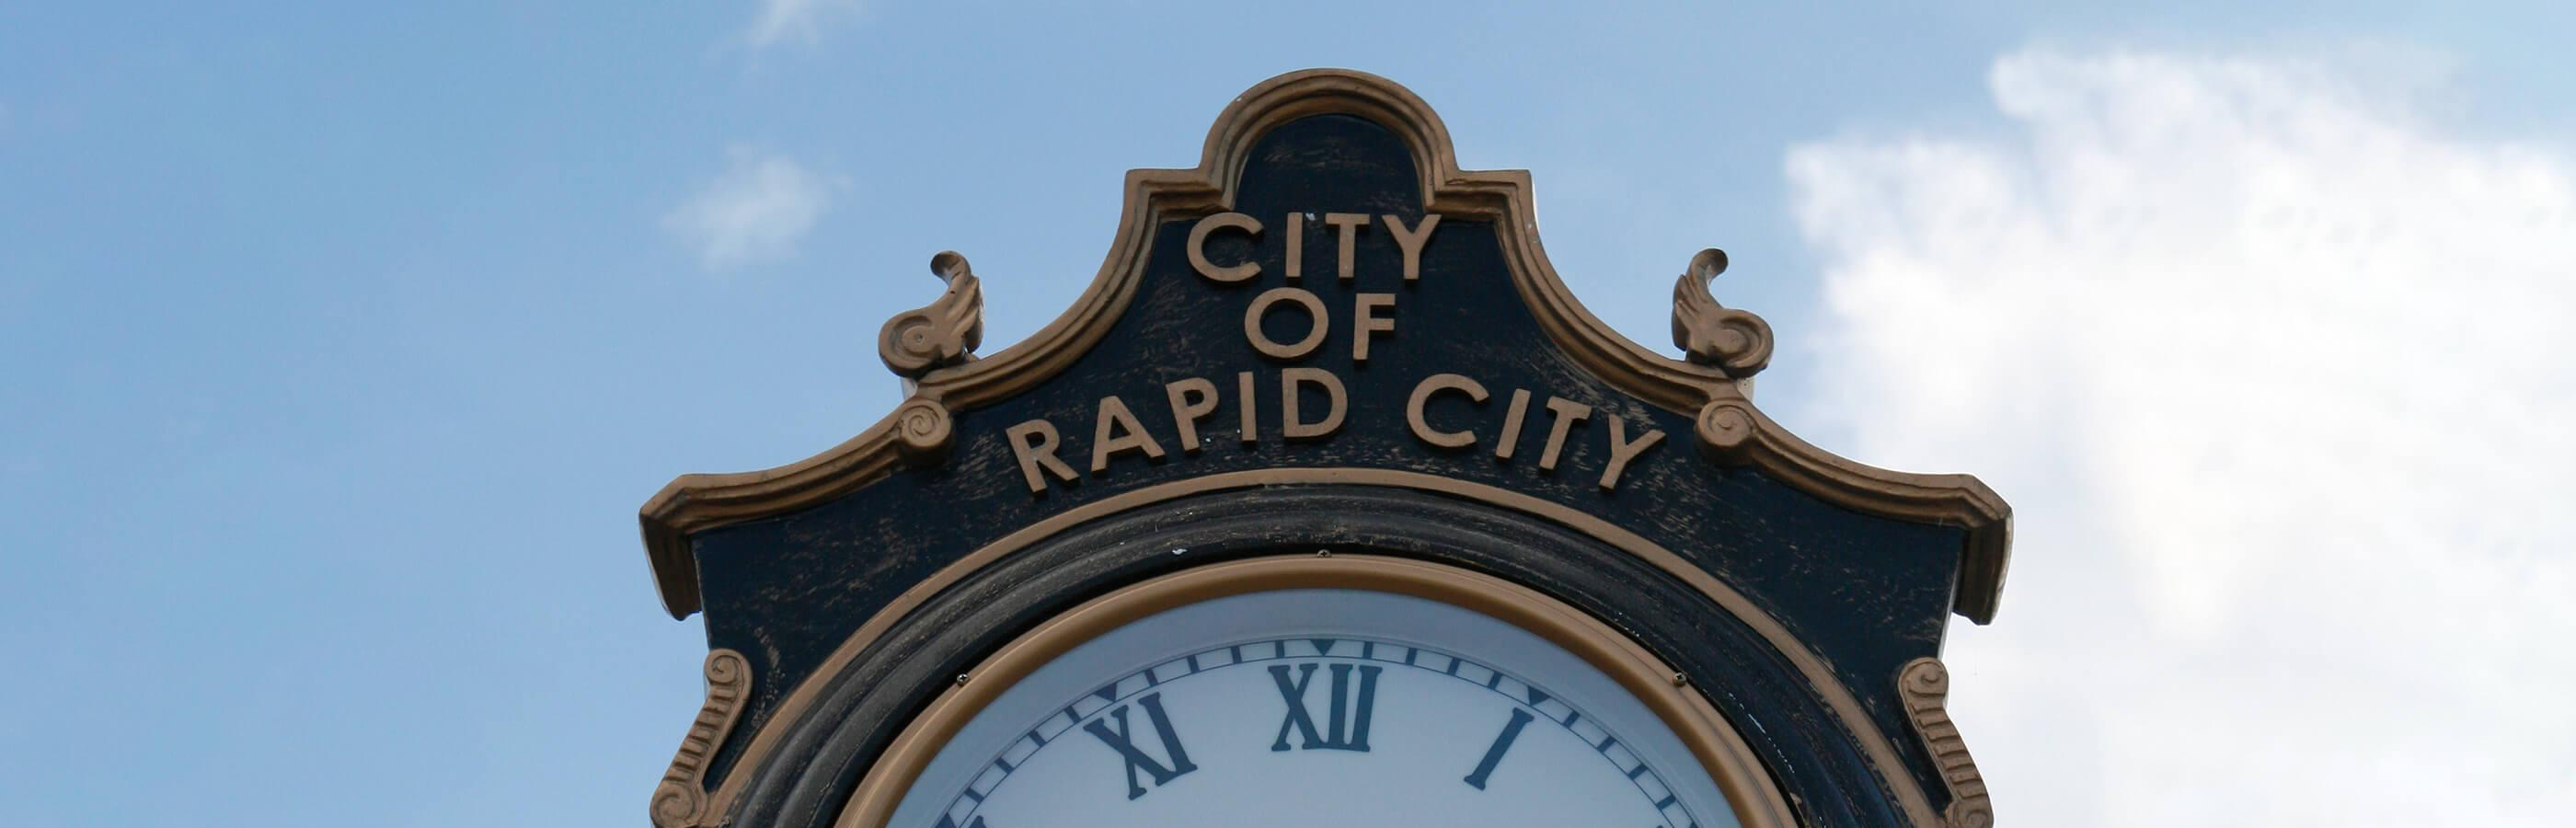 City of Rapid City Clock